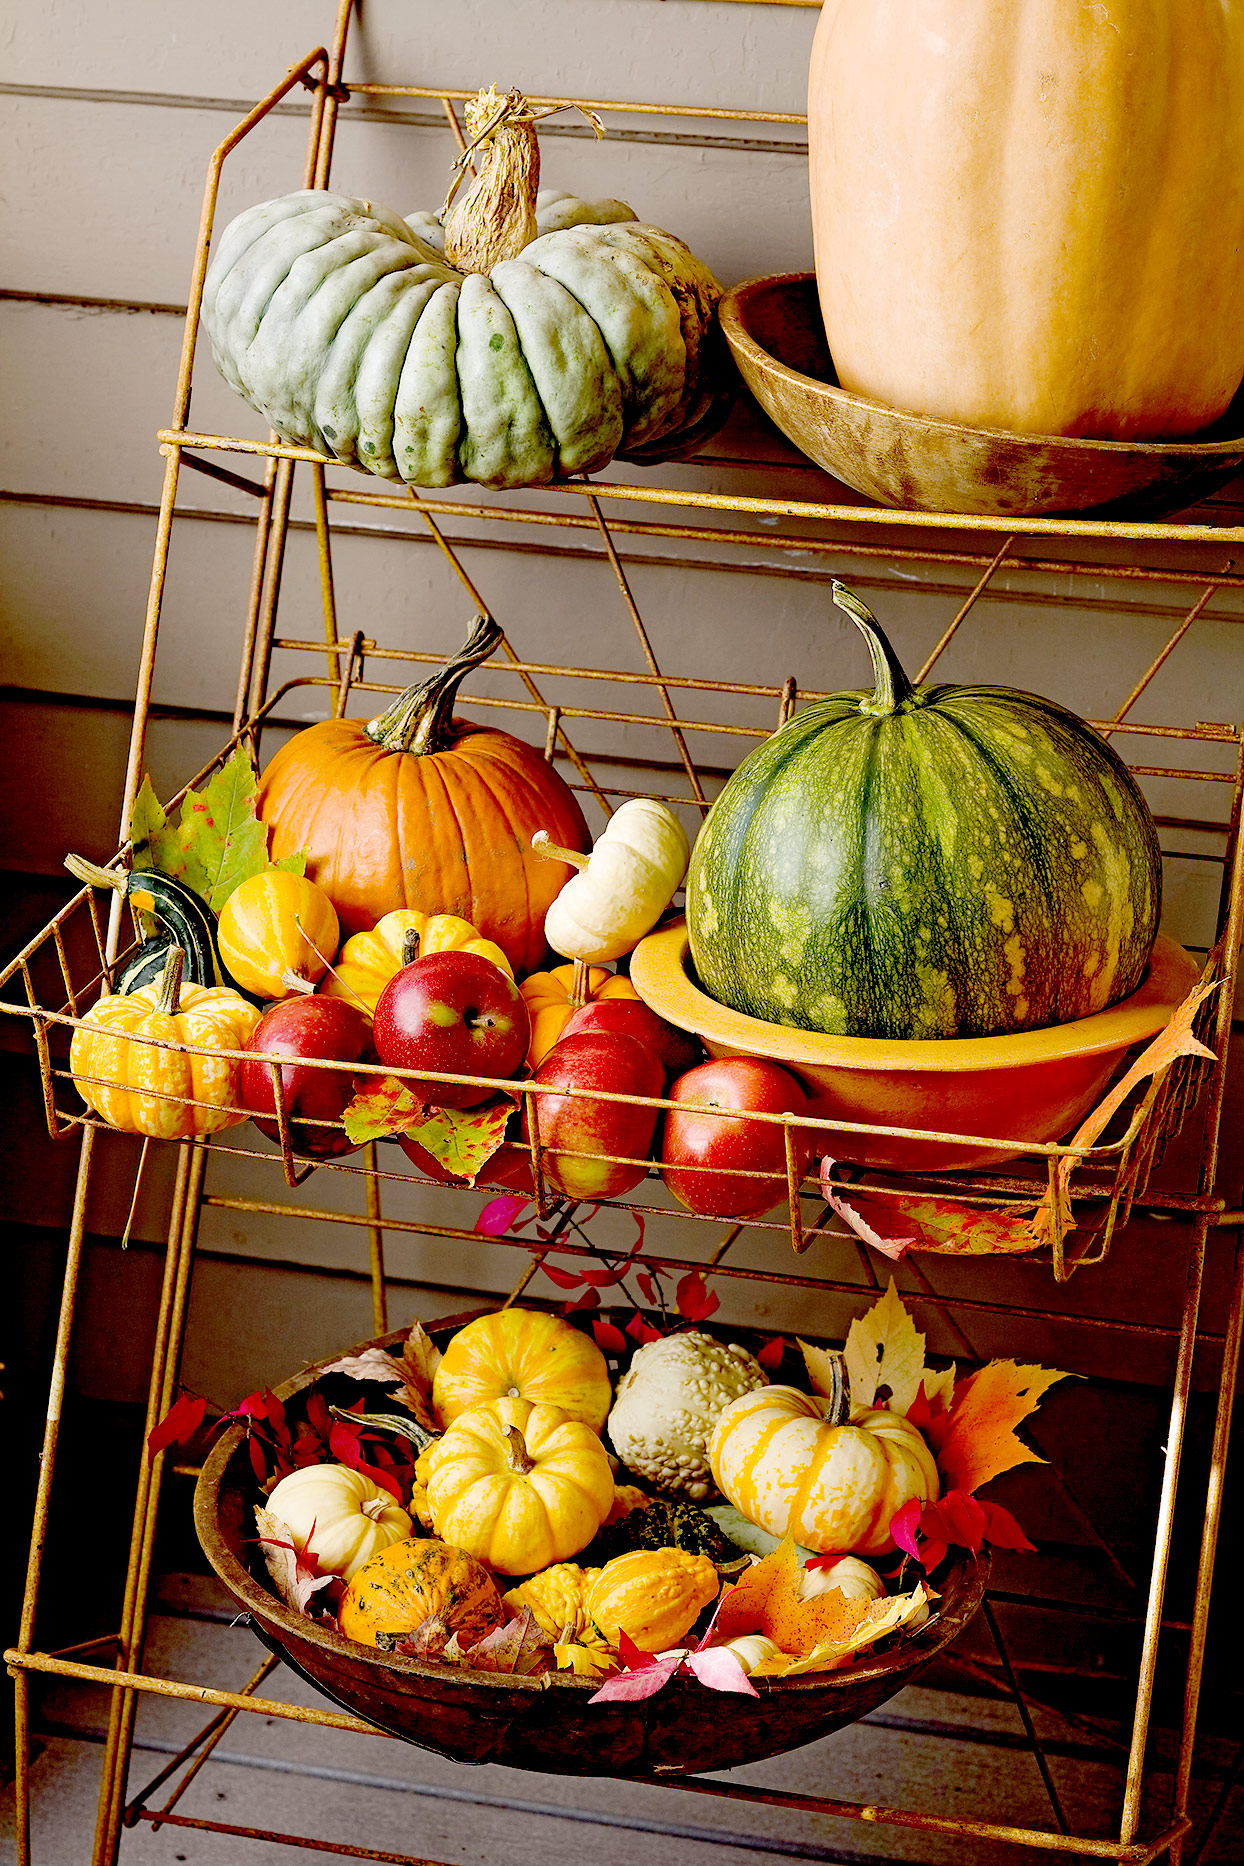 Metal shelving with pumpkins, gourds, and fall décor